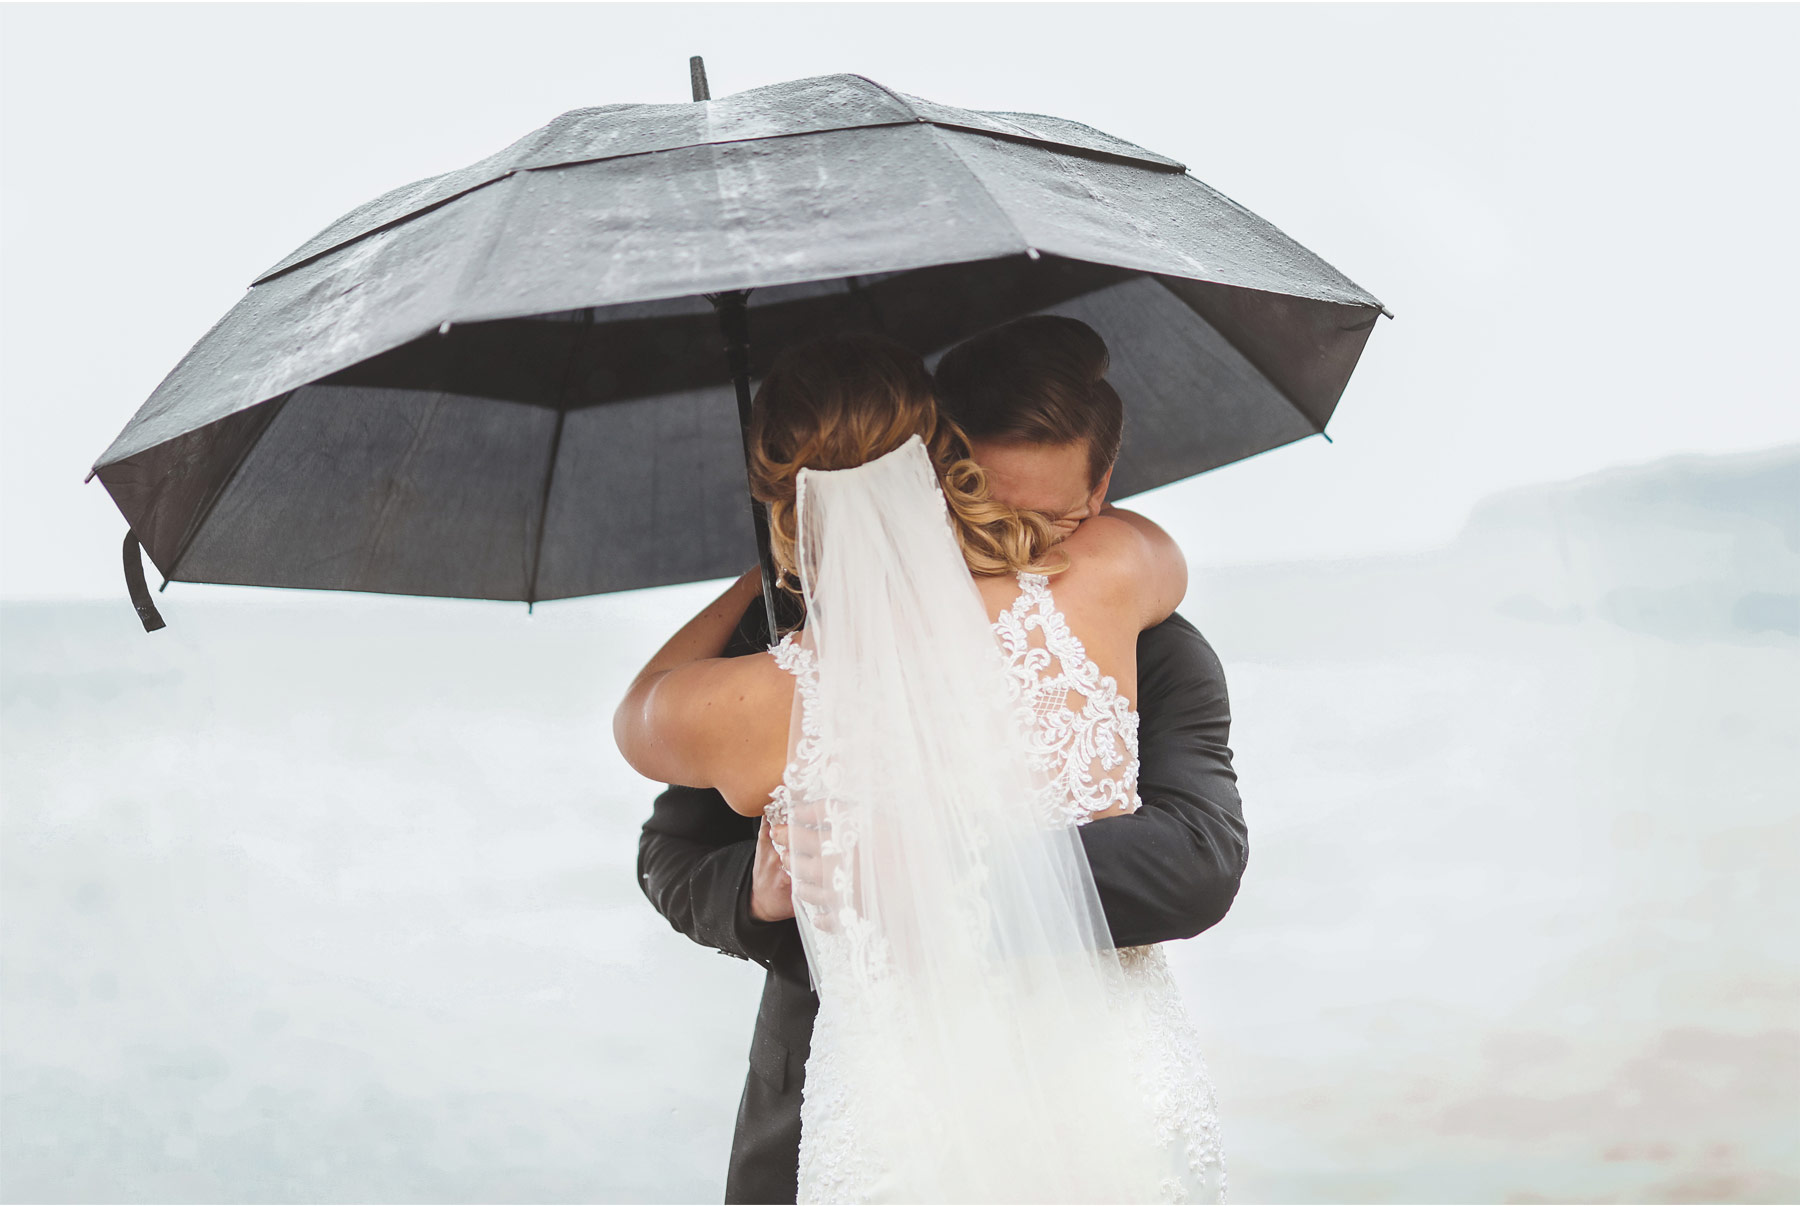 07-Minnesota-Wedding-by-Andrew-Vick-Photography-Grand-Superior-Lodge-Duluth-Two-Harbors-Bride-Dress-Lake-Superior-Rain-Umbrella-Groom-Veronica-and-Tyler.jpg